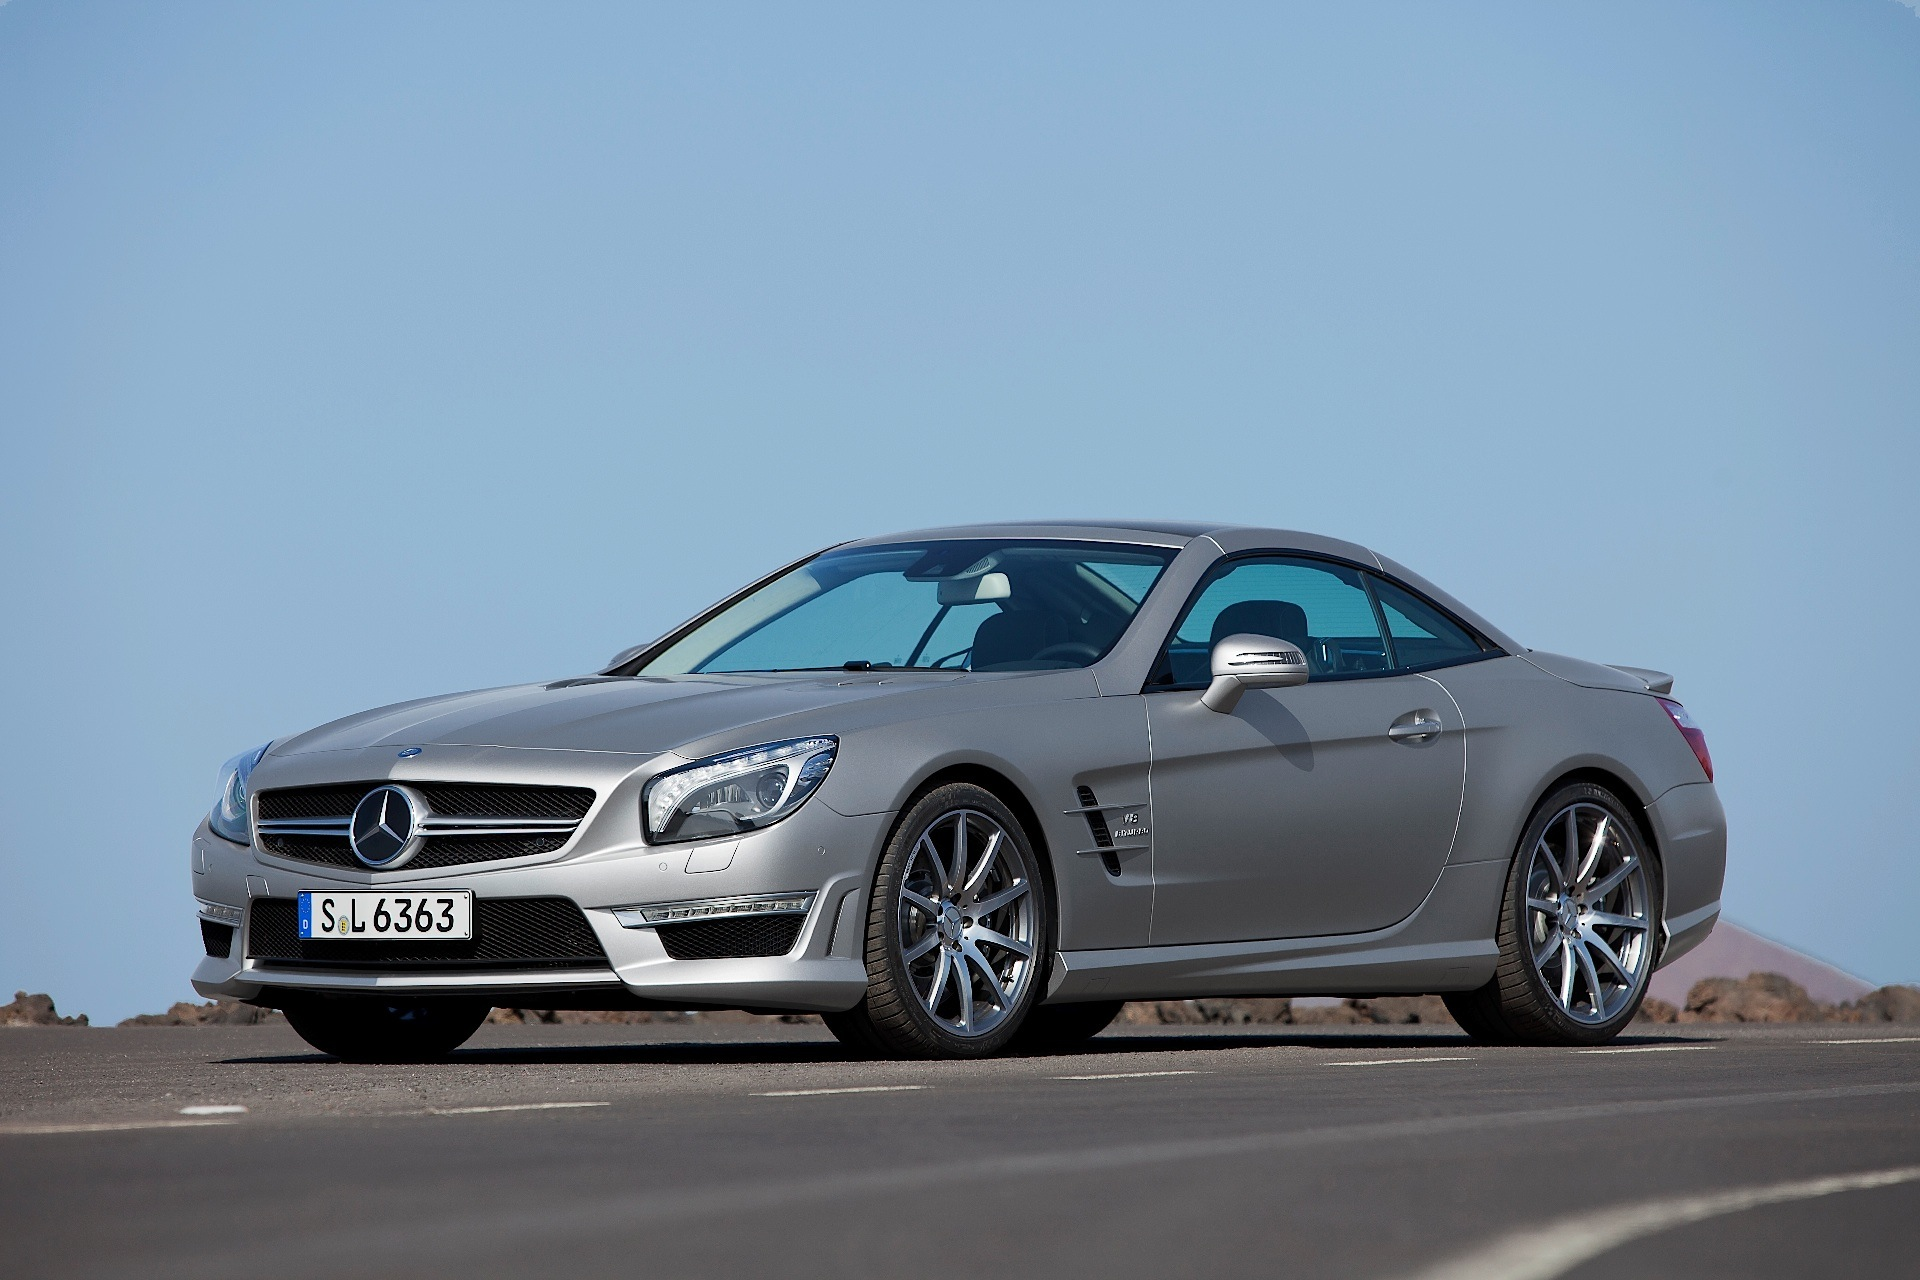 mercedes benz sl 63 amg r231 specs 2012 2013 2014 2015 2016 autoevolution. Black Bedroom Furniture Sets. Home Design Ideas